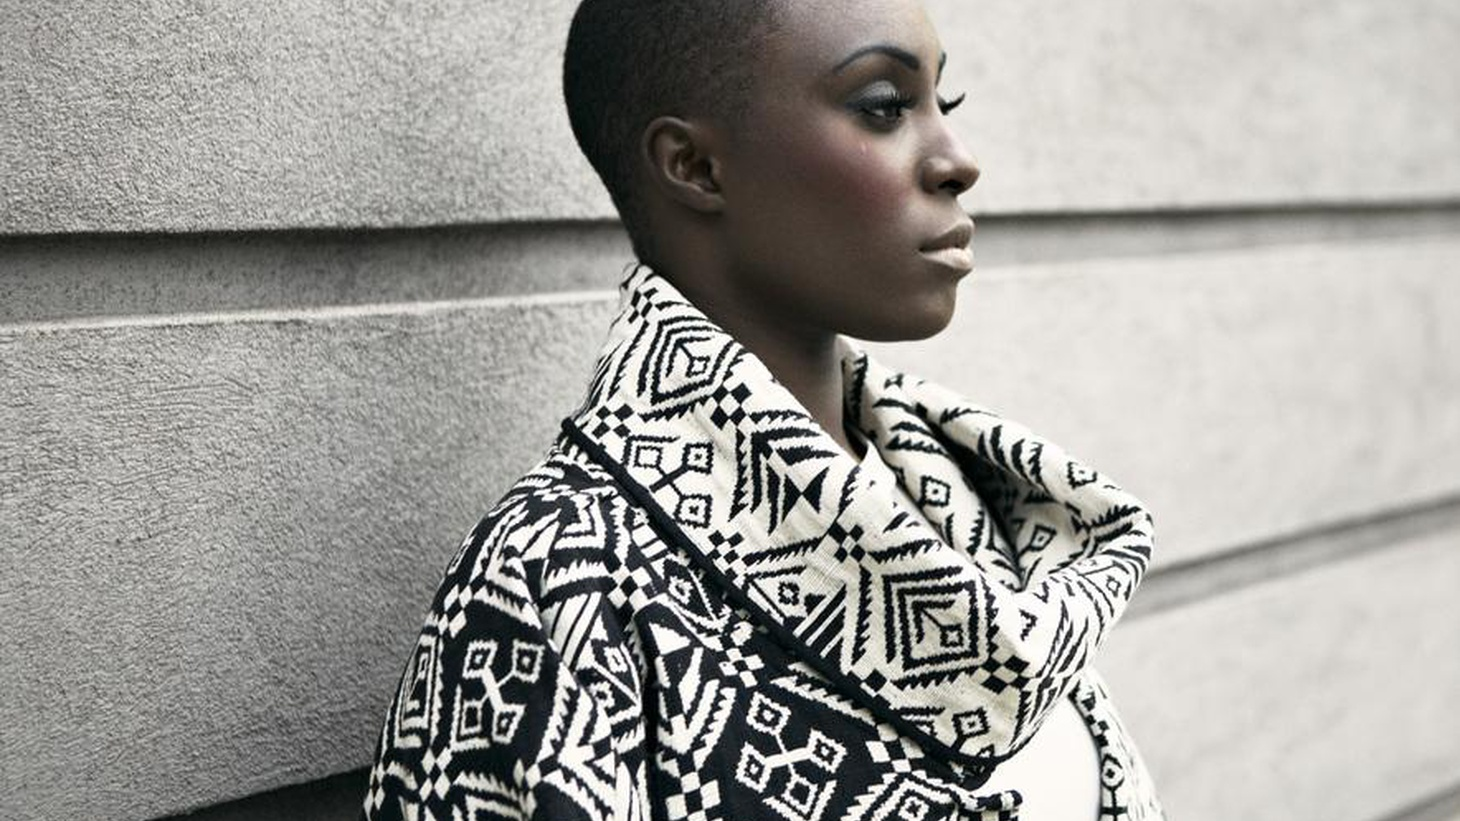 There are many artists that tap into vintage 60's soul in their songs, but Laura Mvula really stands out.